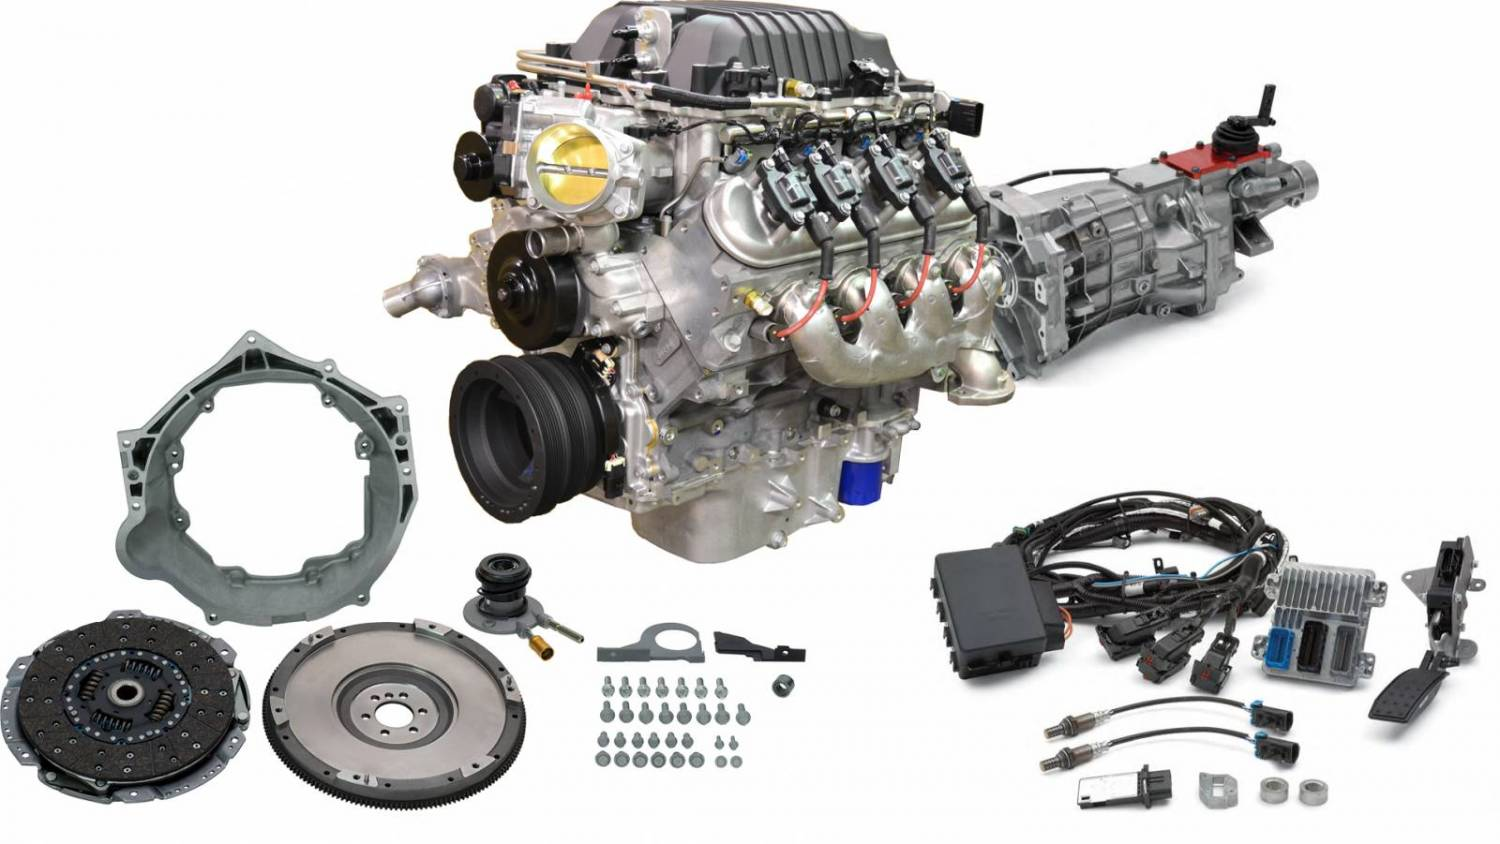 Chevy Performance Parts >> Chevrolet Performance Parts Cpslsaerodt56 Chevy Performance Lsa